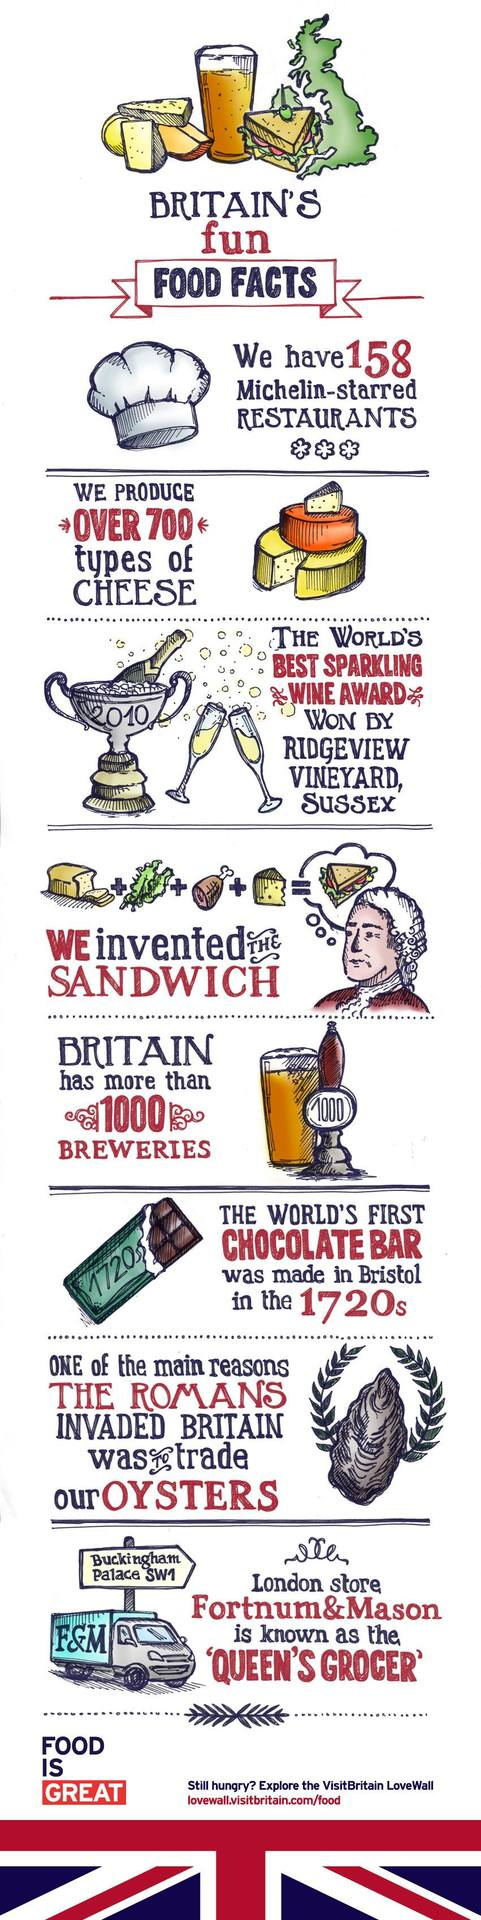 Britain\'s fun food facts! #Infographic | GREAT British Food ...